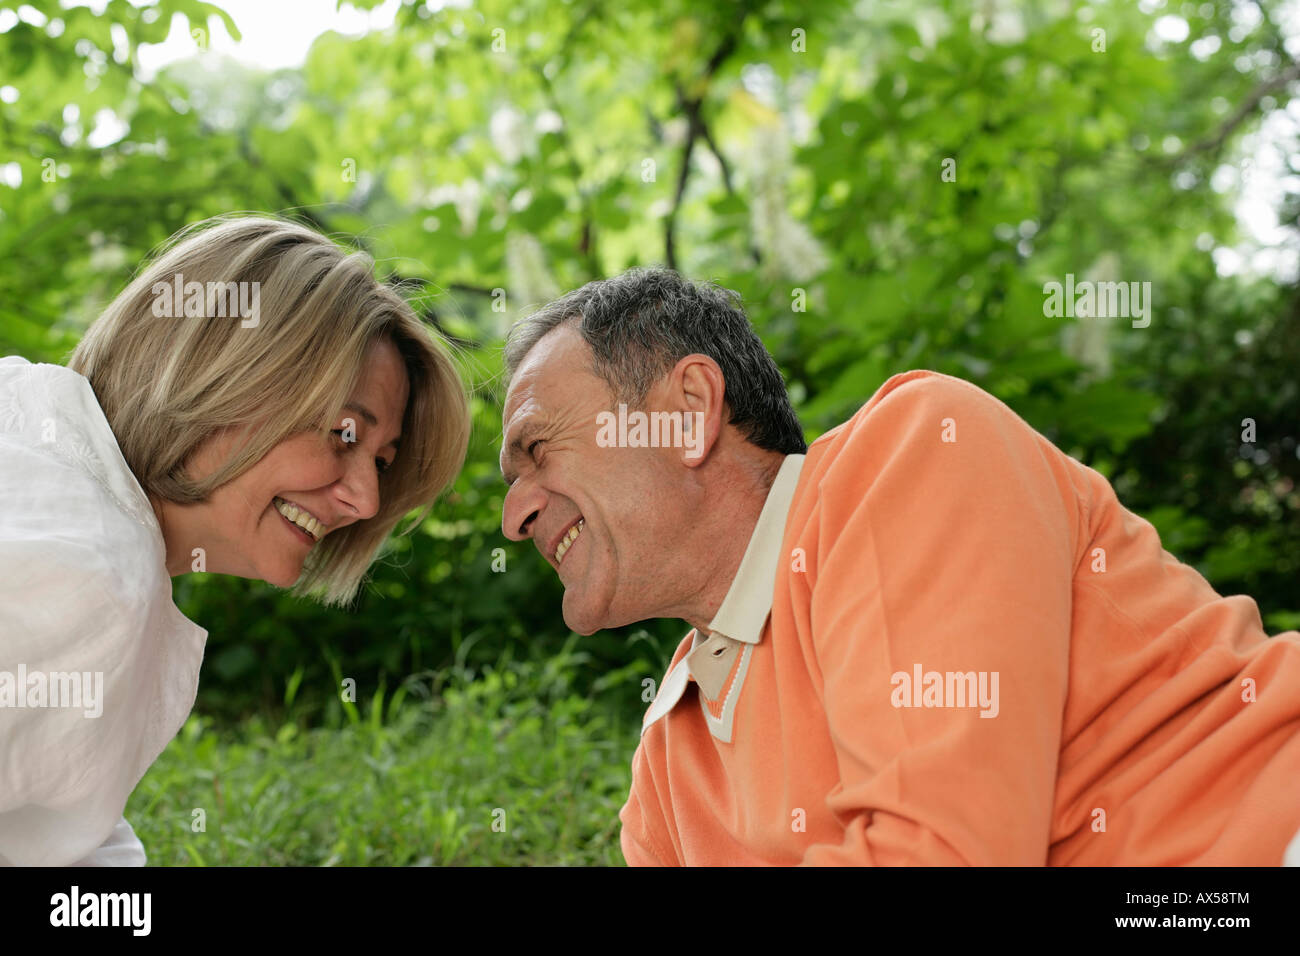 Laughing mature couple lying on grass and looking into each other's eyes - Stock Image